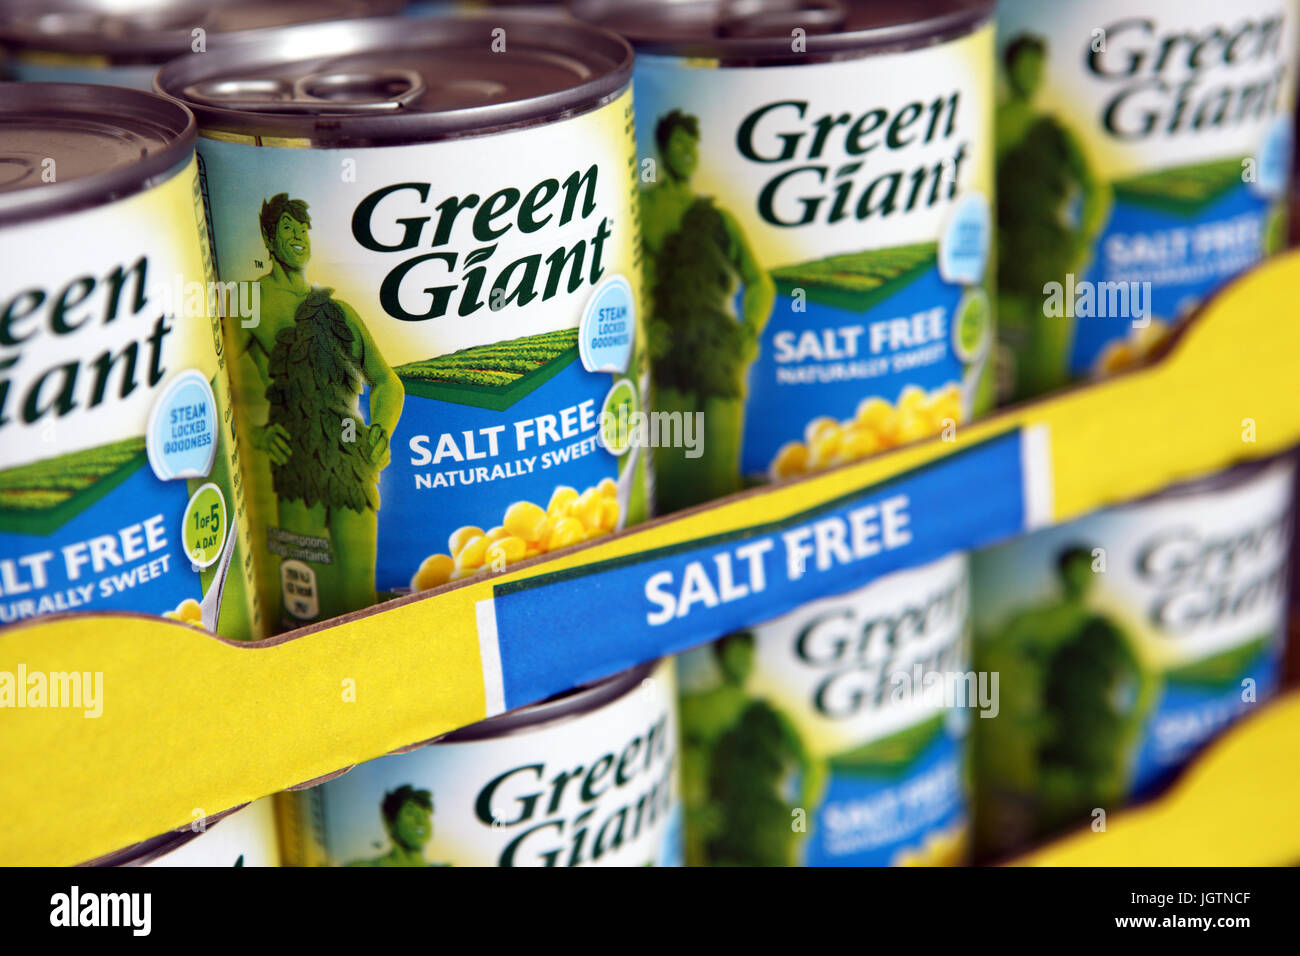 Tins of salt free Green Giant sweetcorn - Stock Image